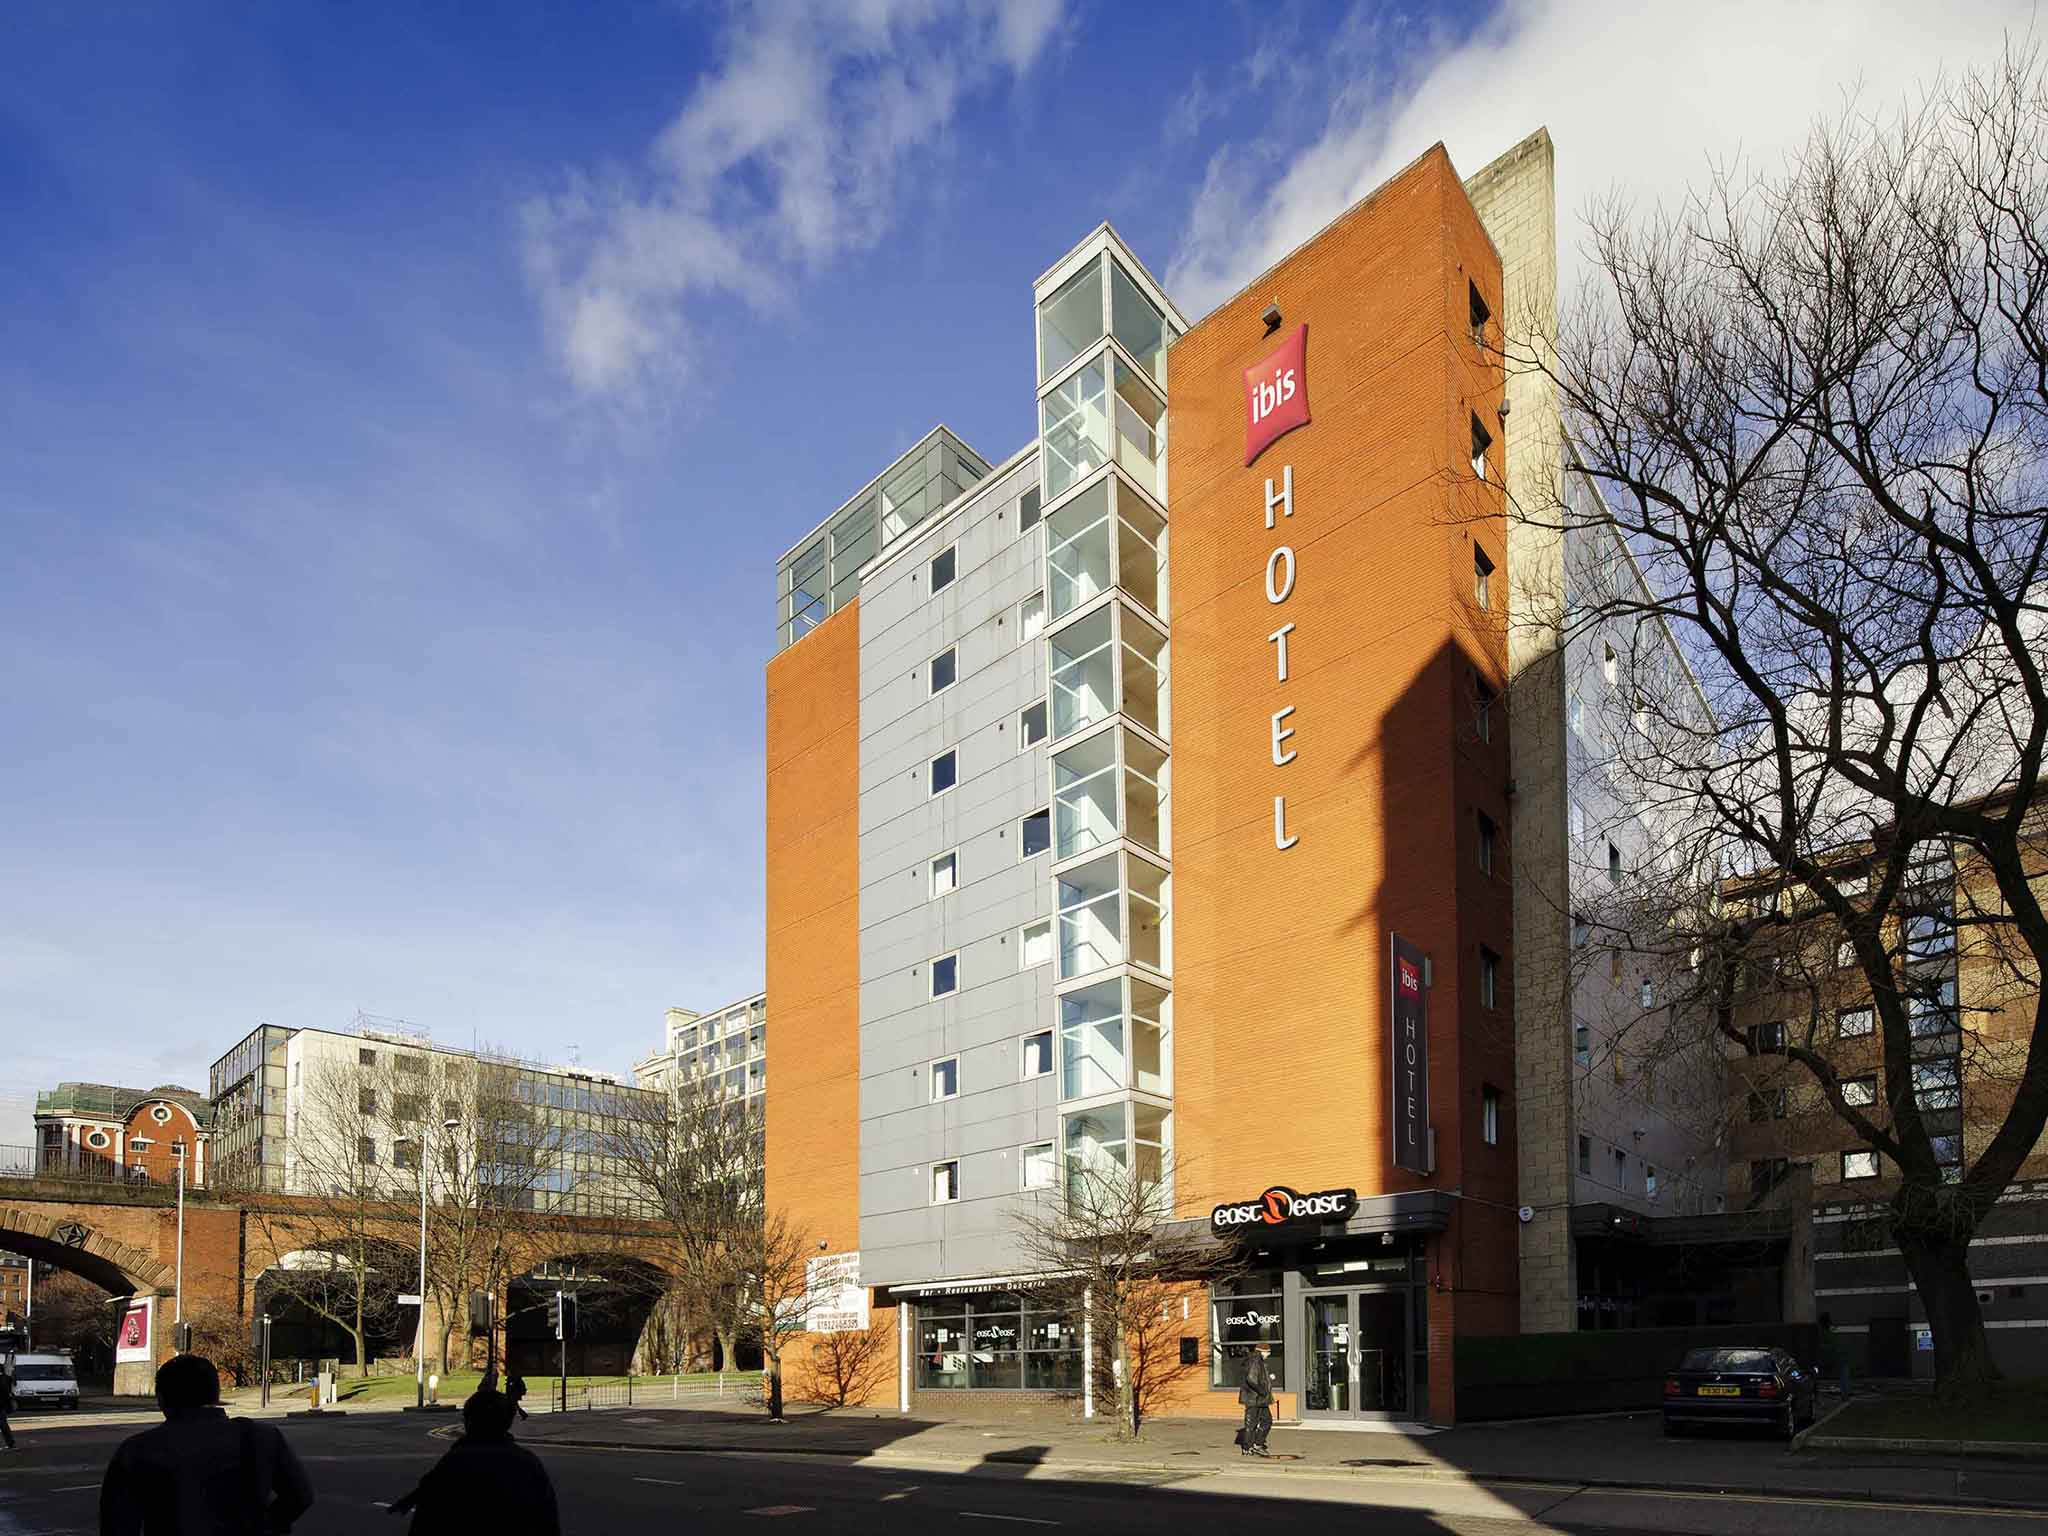 โรงแรม – ibis Manchester Centre Princess Street (new ibis rooms)